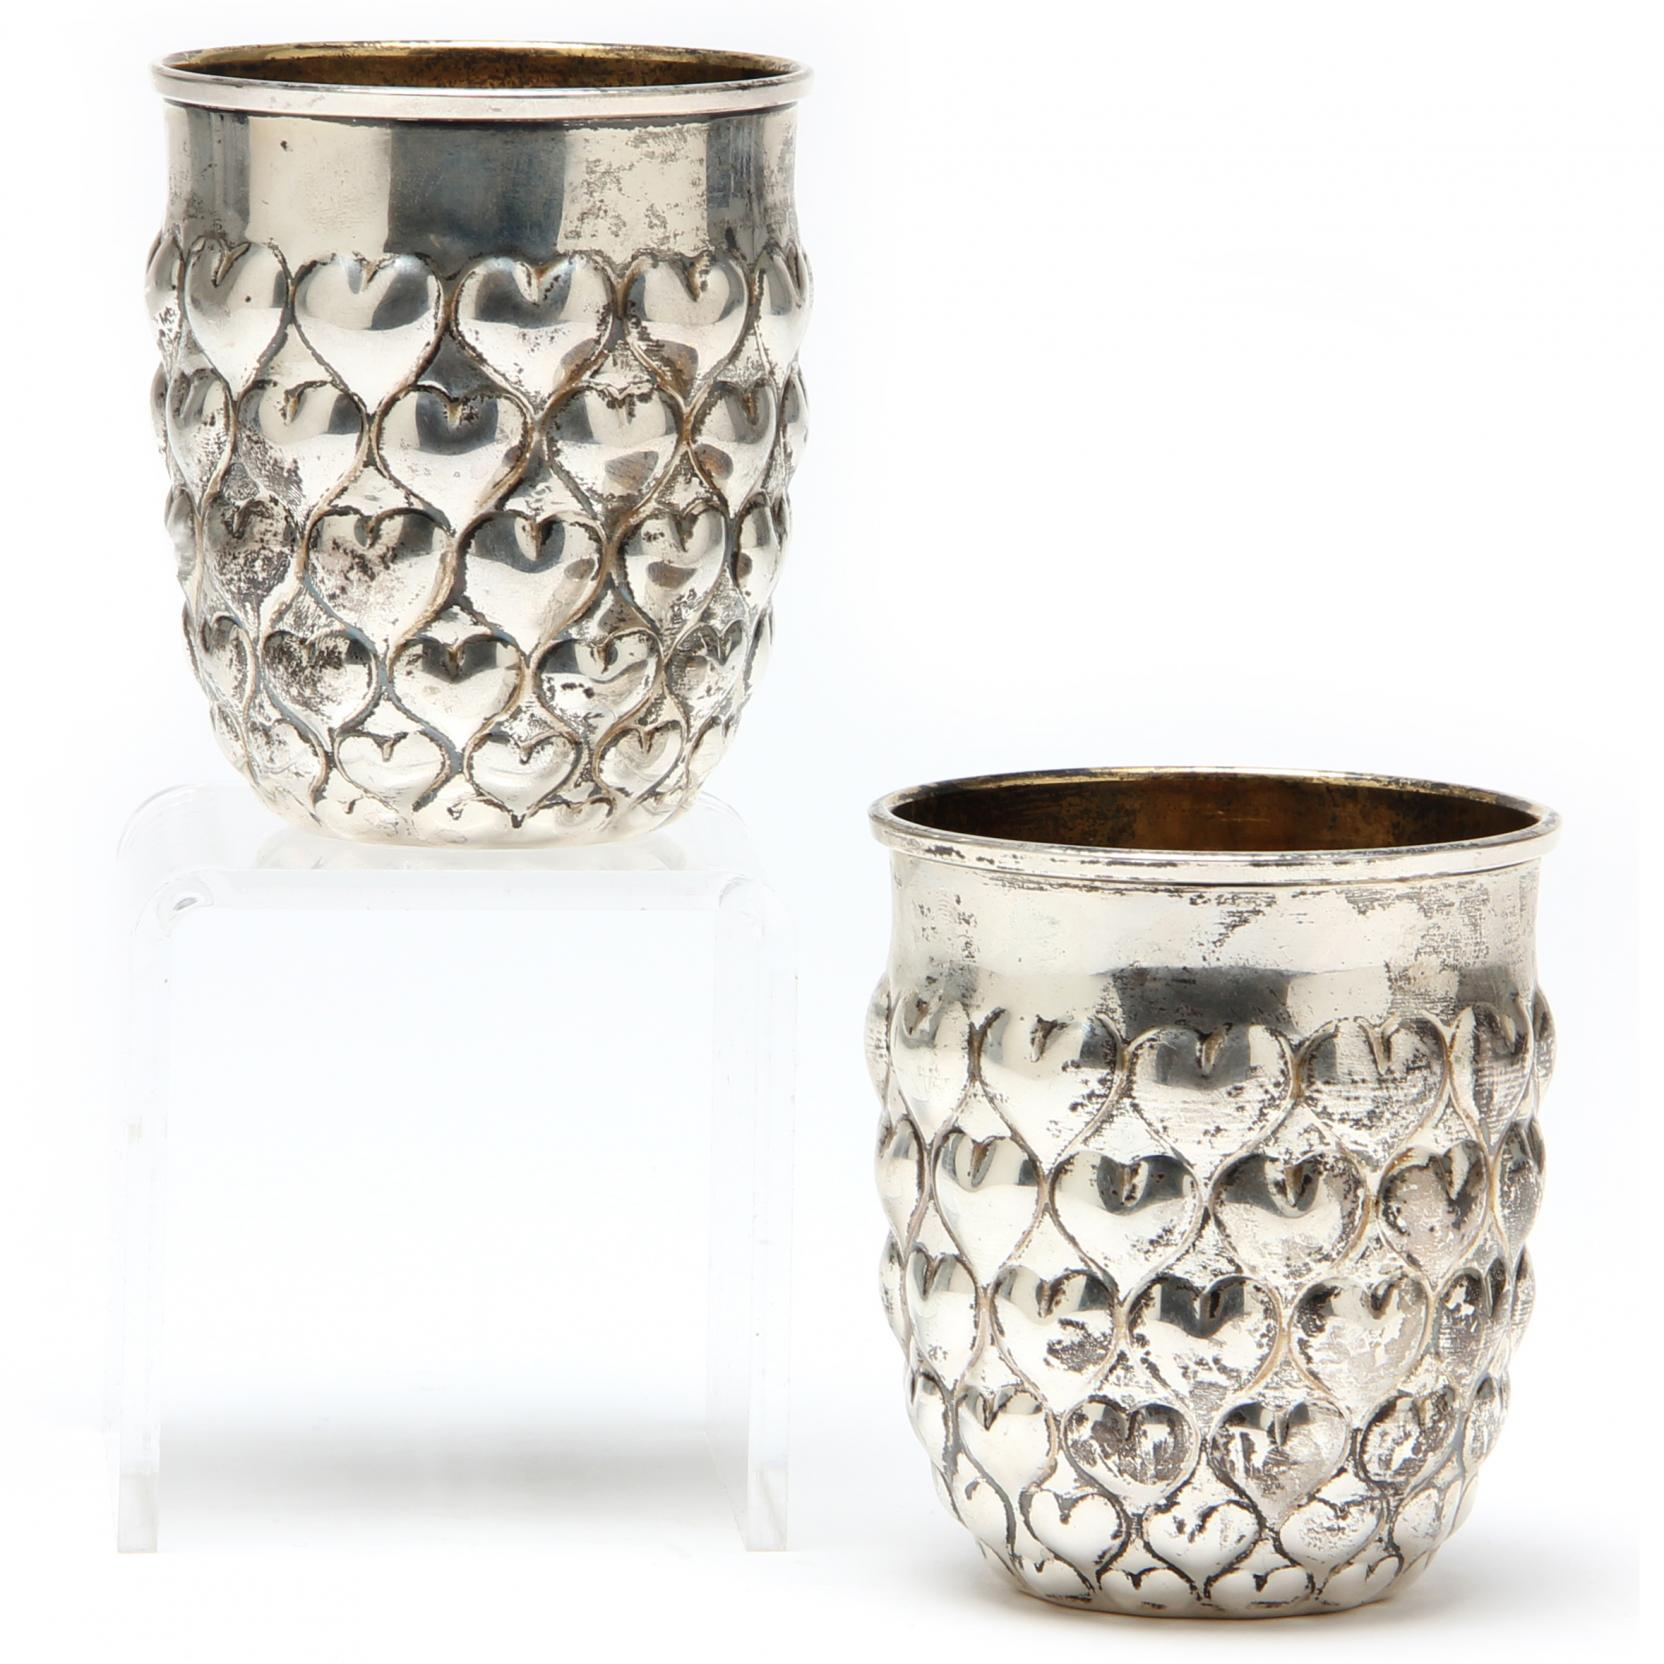 a-pair-of-sterling-silver-tumblers-by-pampaloni